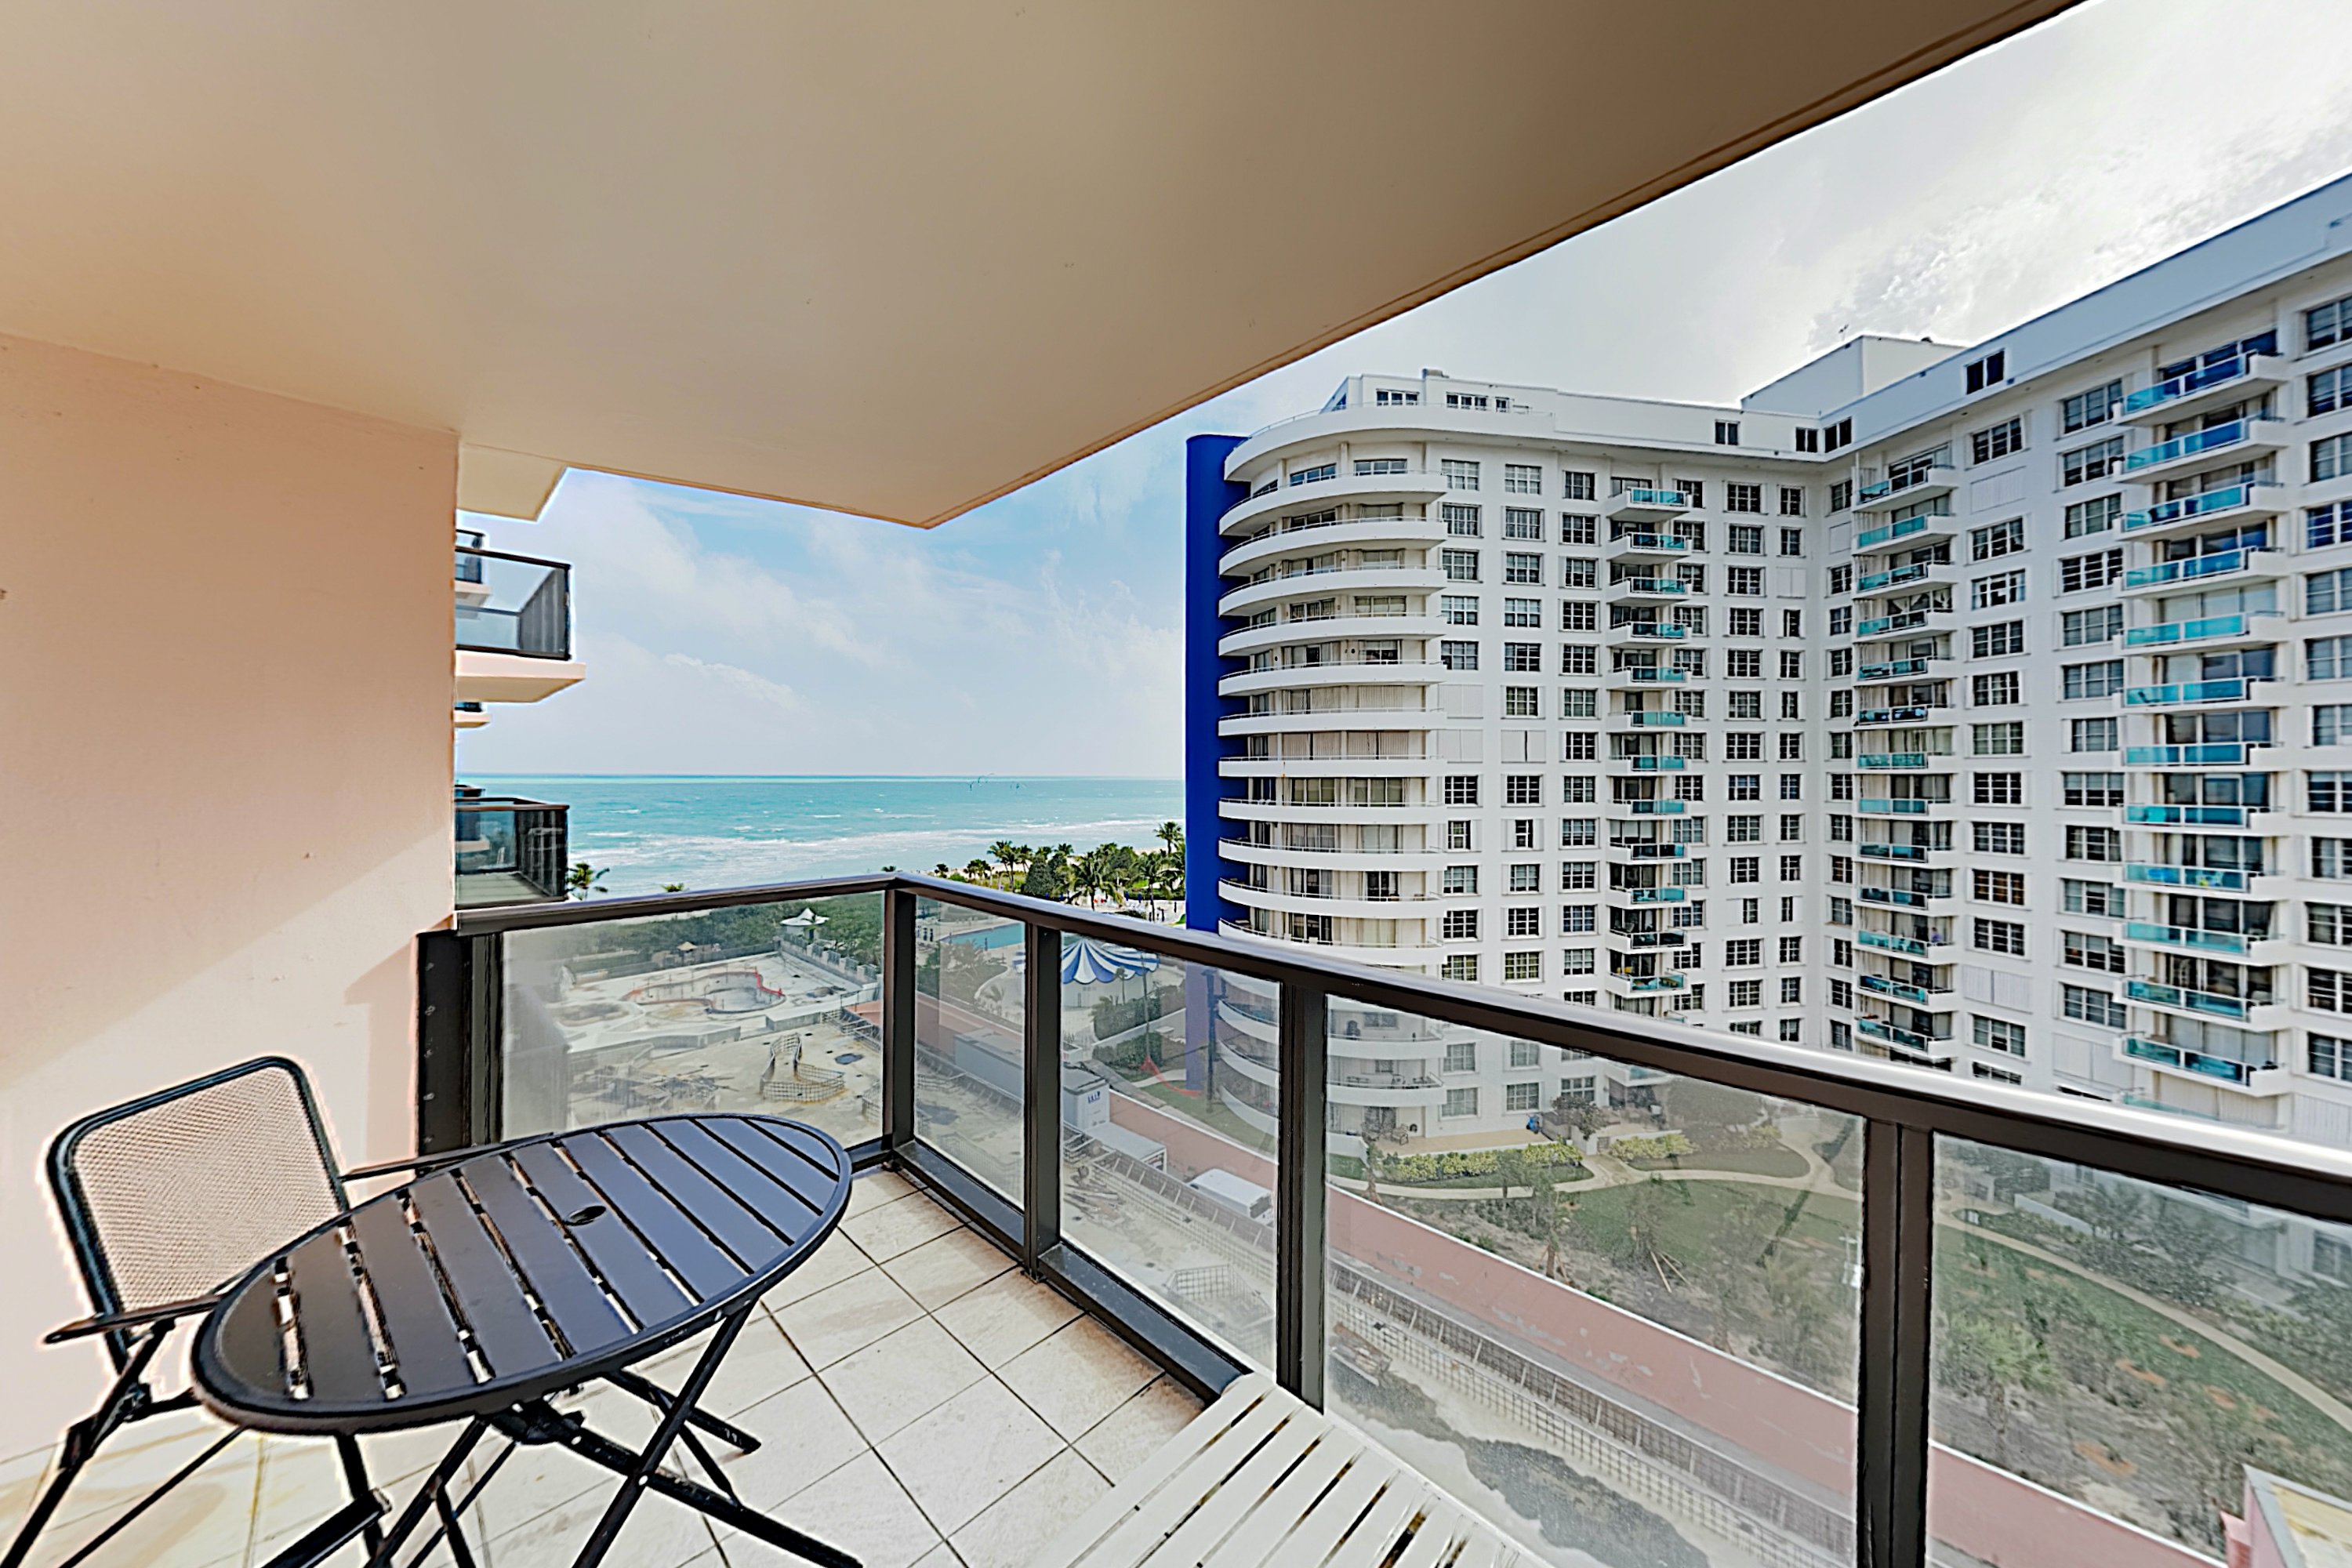 Miami Beach FL Vacation Rental Welcome to Miami